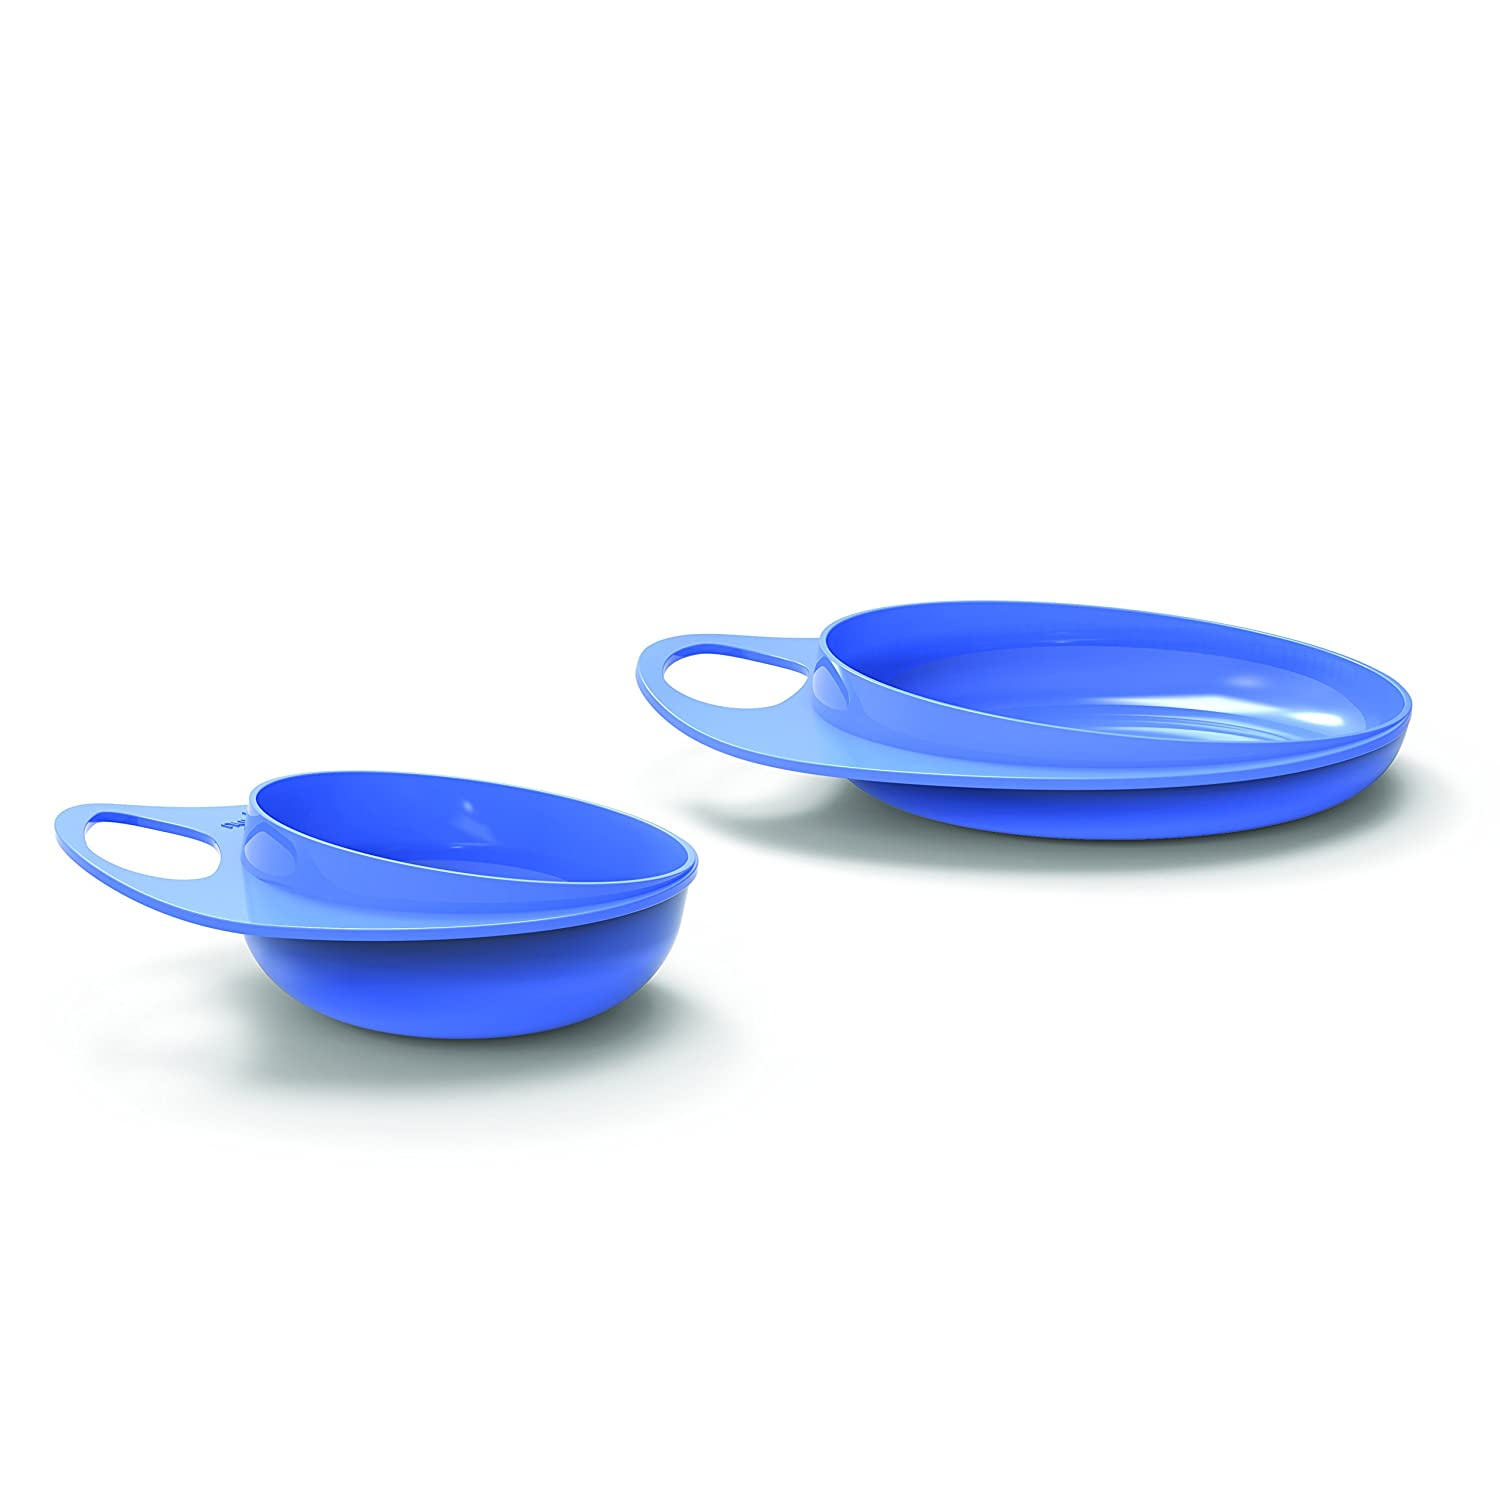 Baby Feeding Meal Set: Bowl /& Saucer Baby Training Tableware Feeding Bowl Anti Spill-Ideal for baby 1st meals EU Brand//Italian design Ultra Hygienic Nuvita 8461 EasyEating Weaning Kit Green